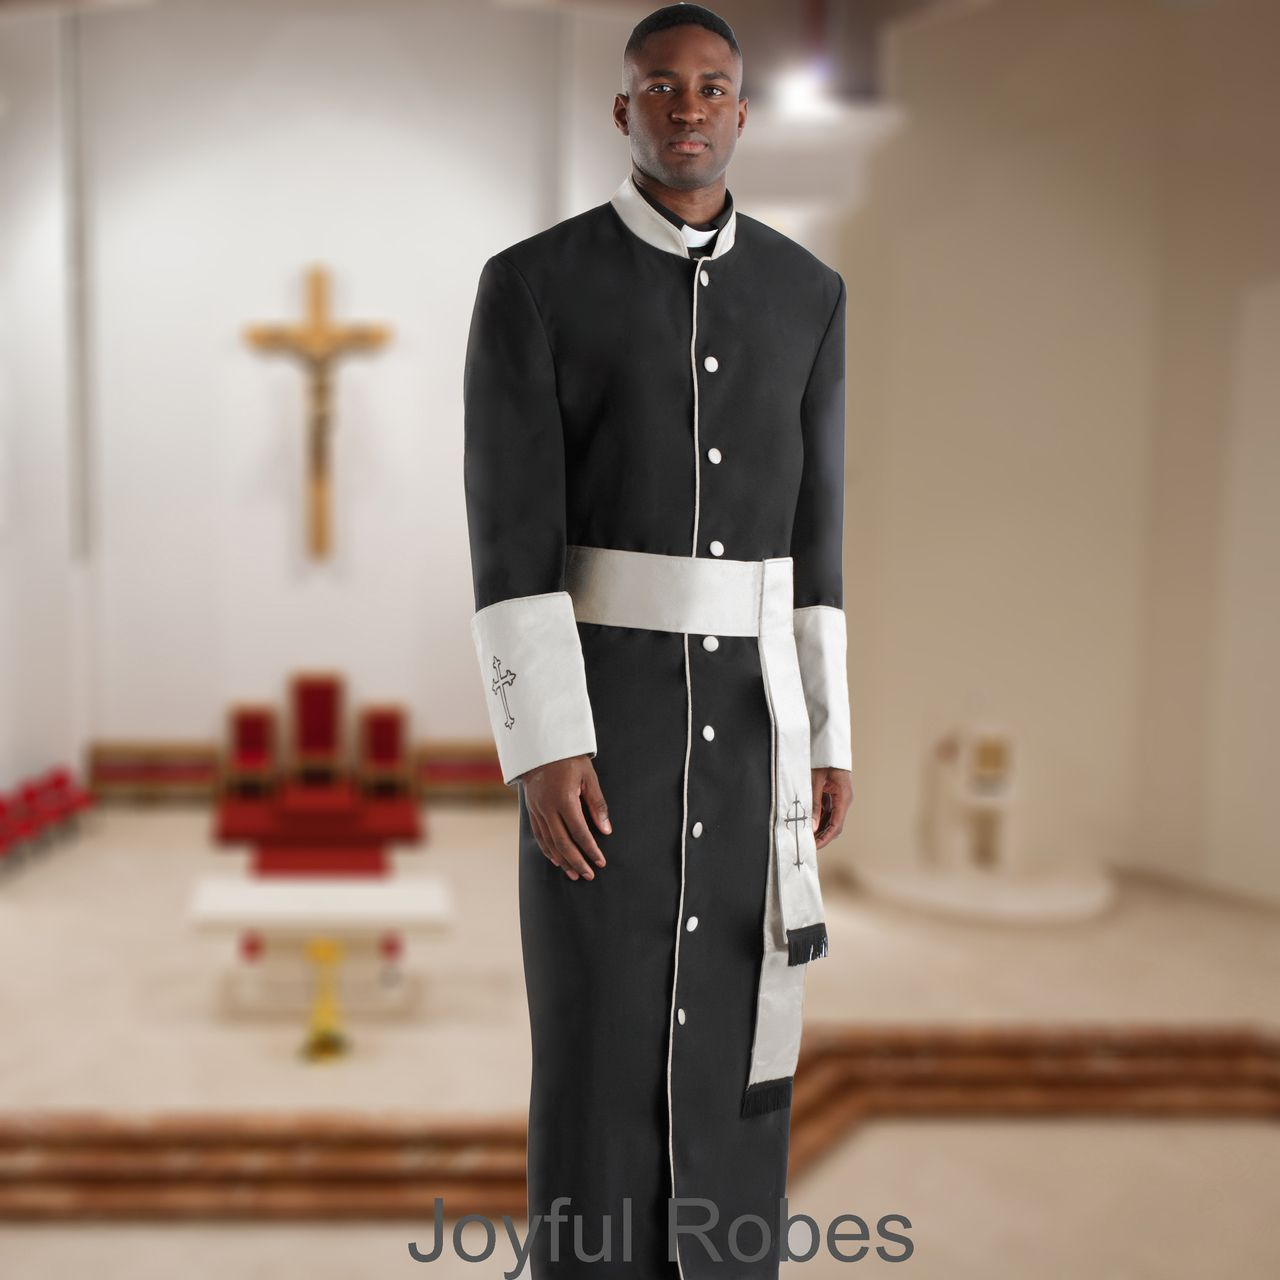 357 M. Men's Pastor/Clergy Robe - Black/White Cuff Matching Cincture Set